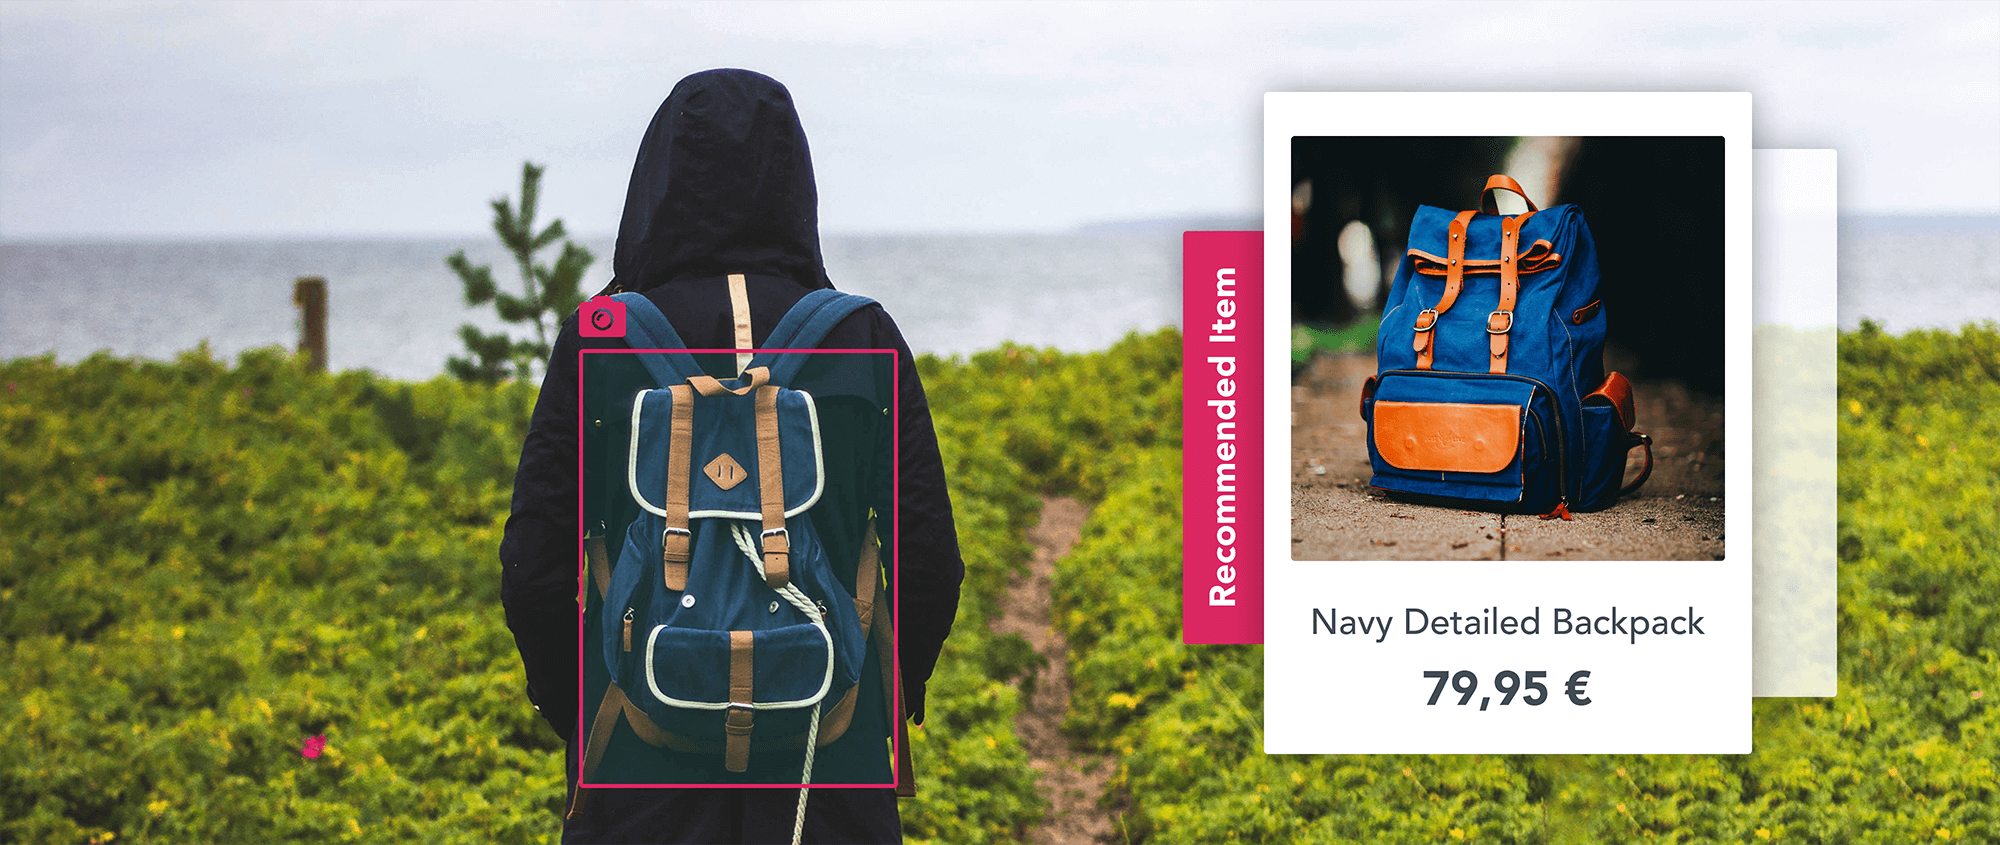 Recommended item for a visually similar backpack that a girl is wearing